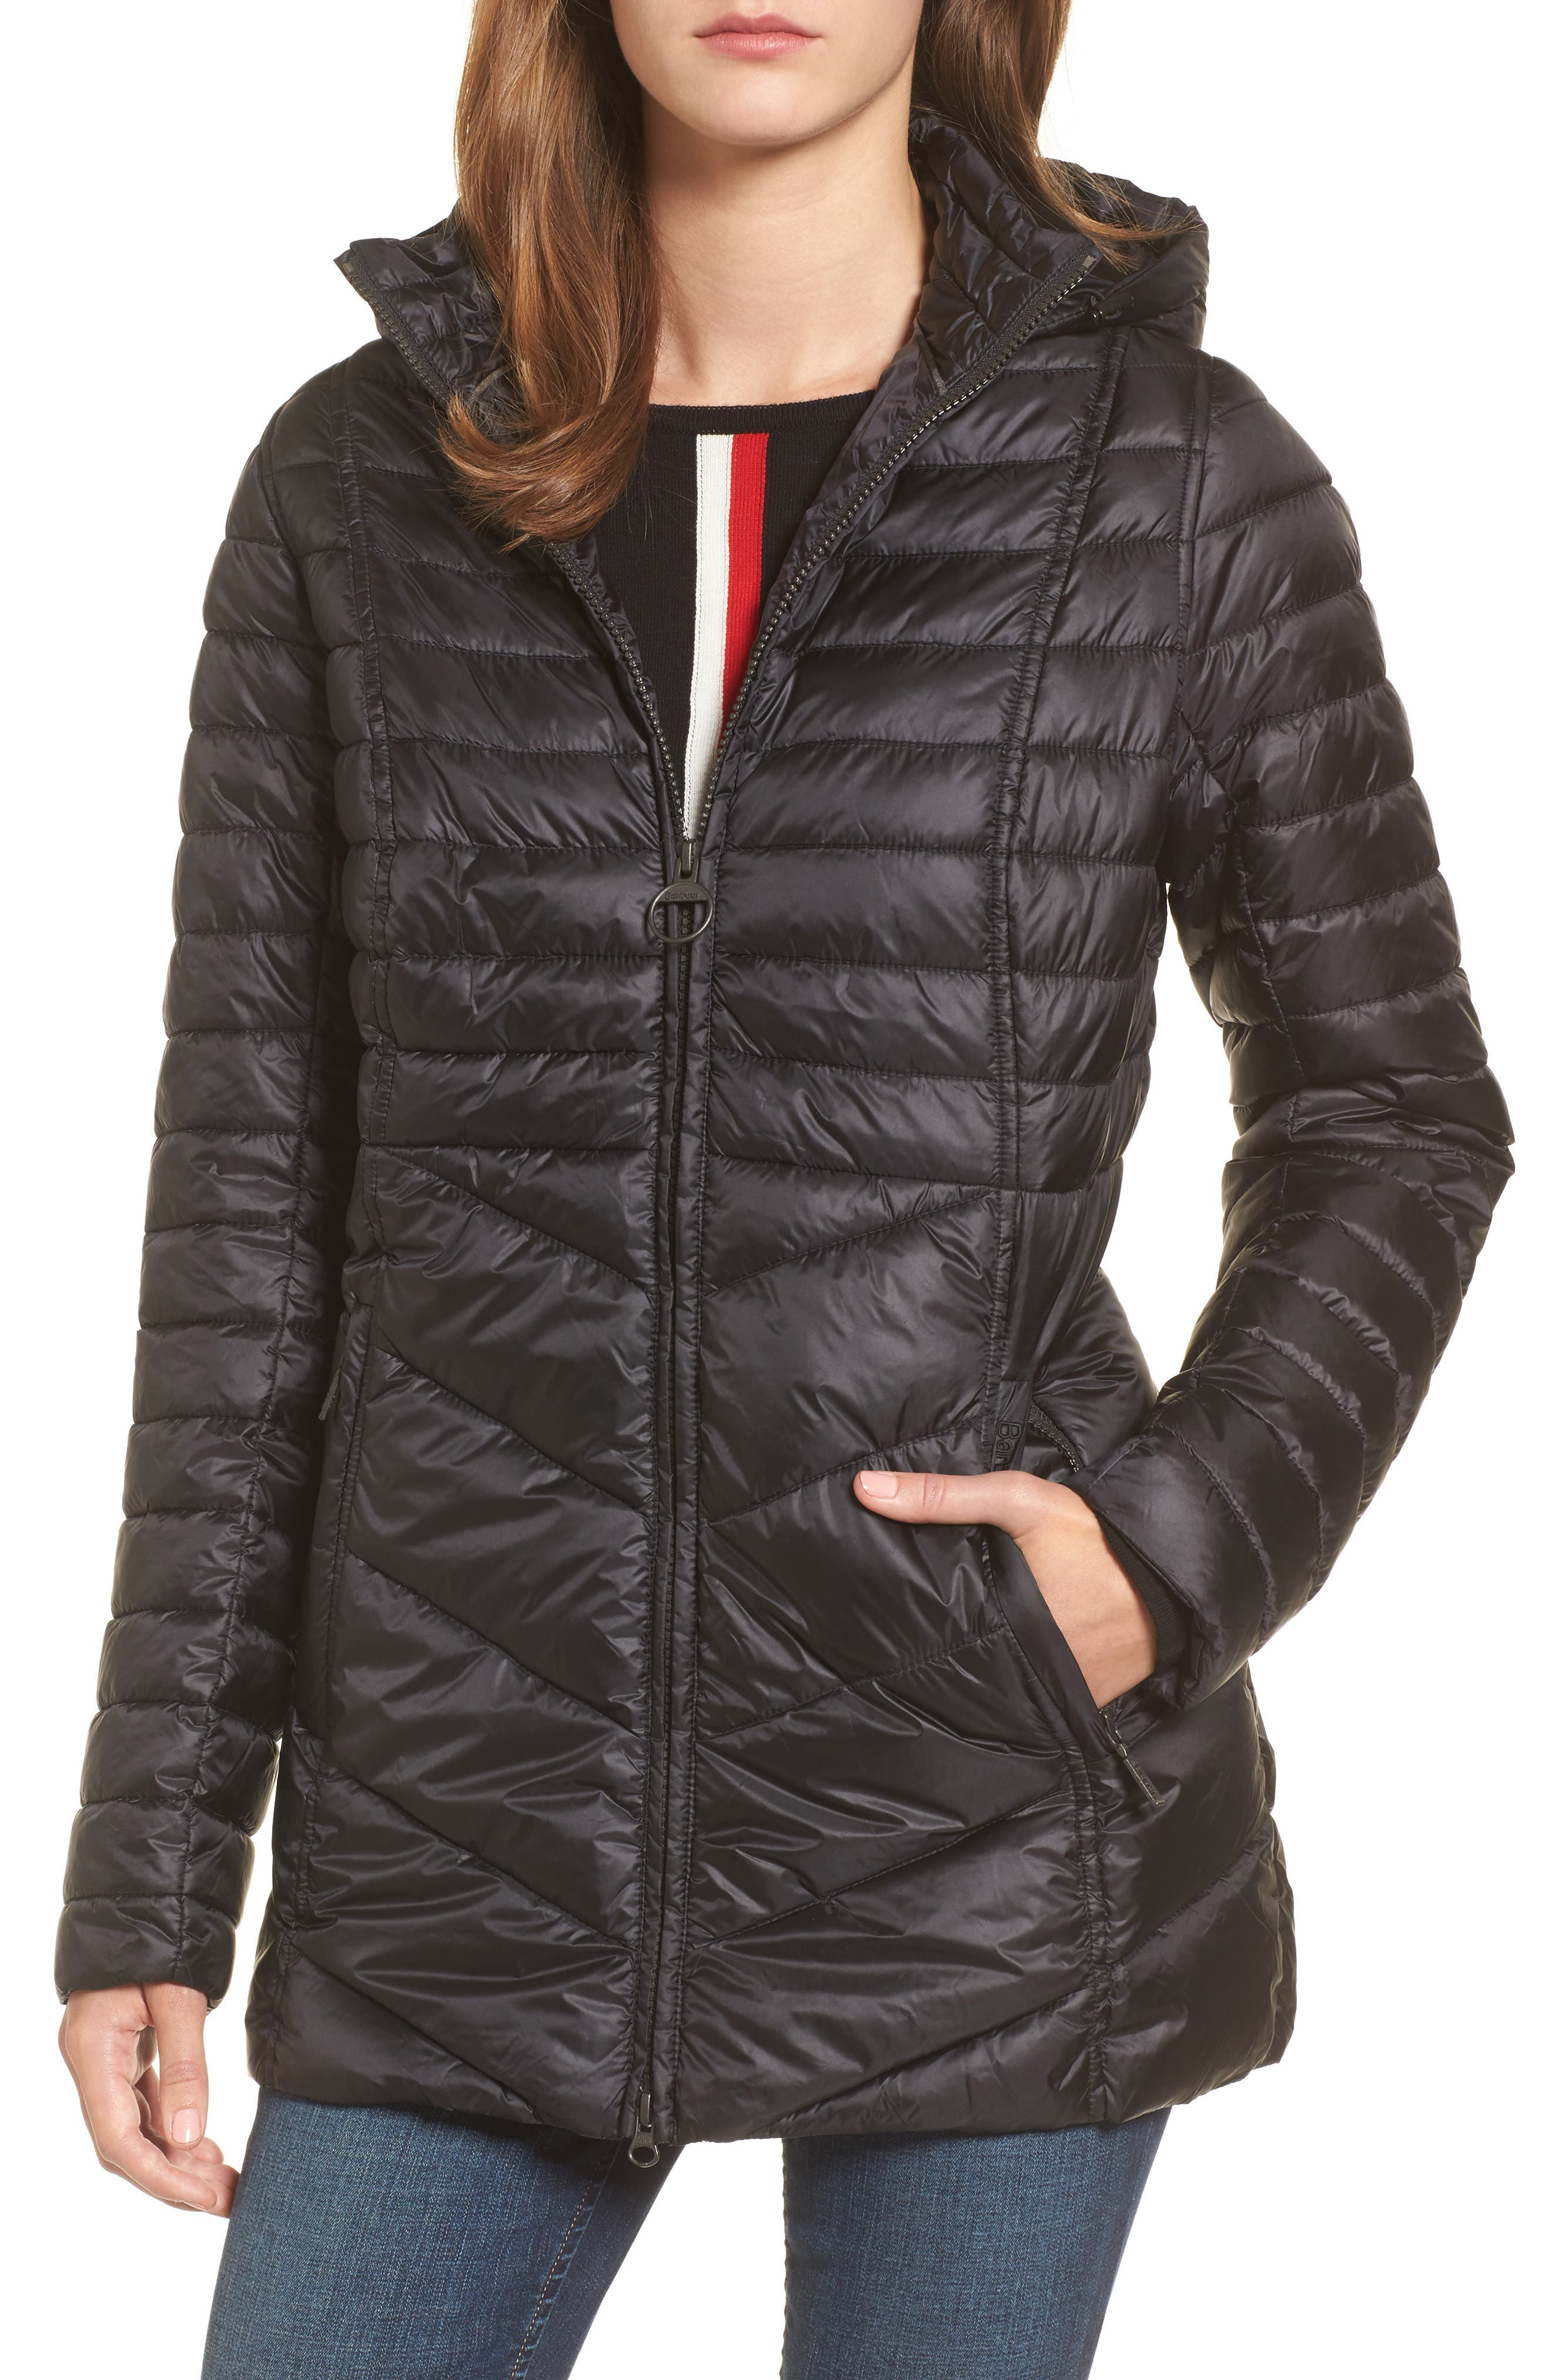 Linton Hooded Water Resistant Quilted Jacket,                             Main thumbnail 1, color,                             001